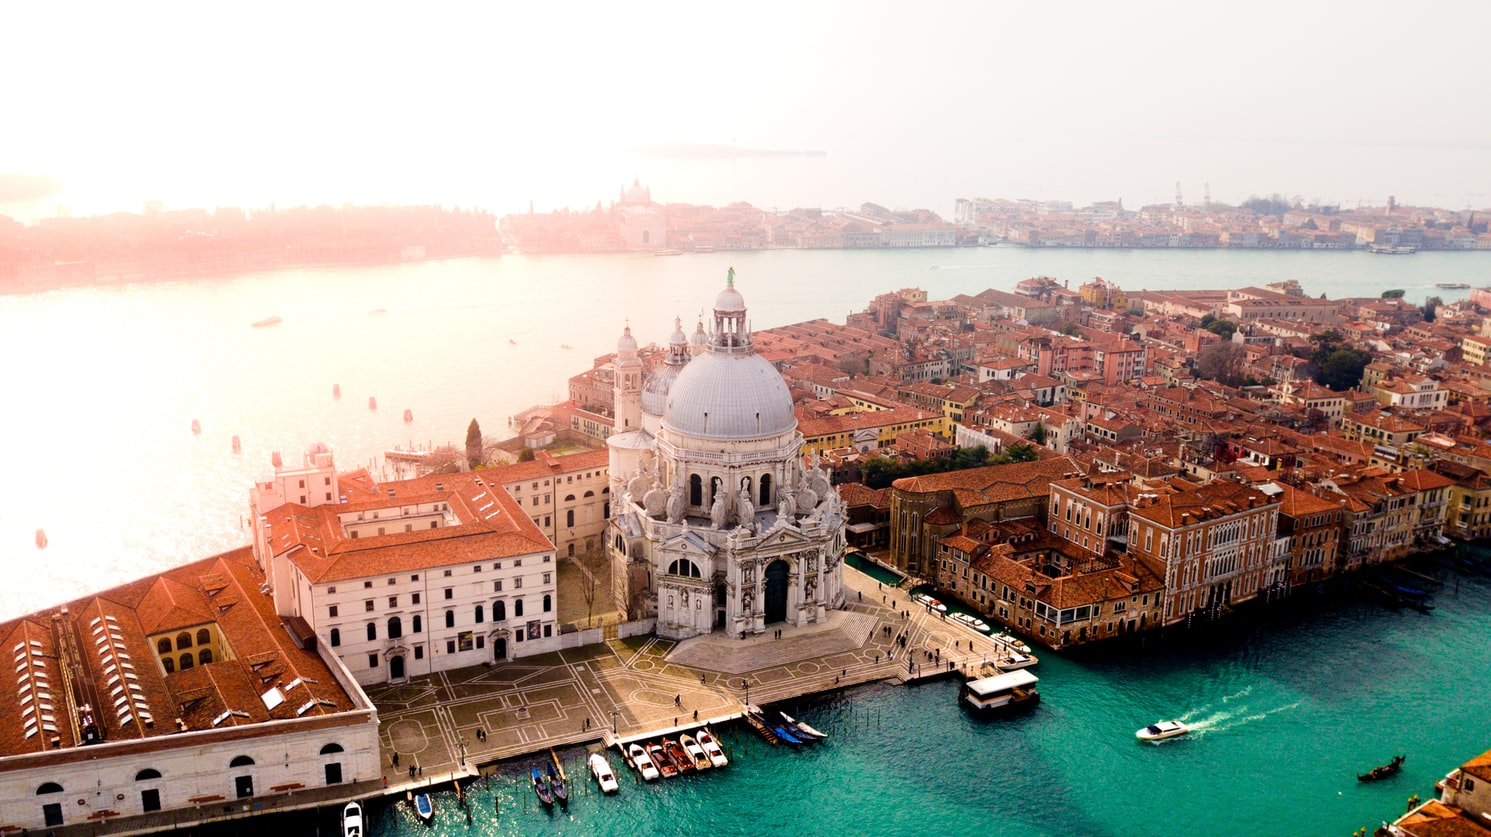 Accommodation in Venice: Hotels, hostels and apartments. See how much a night in Venice costs.